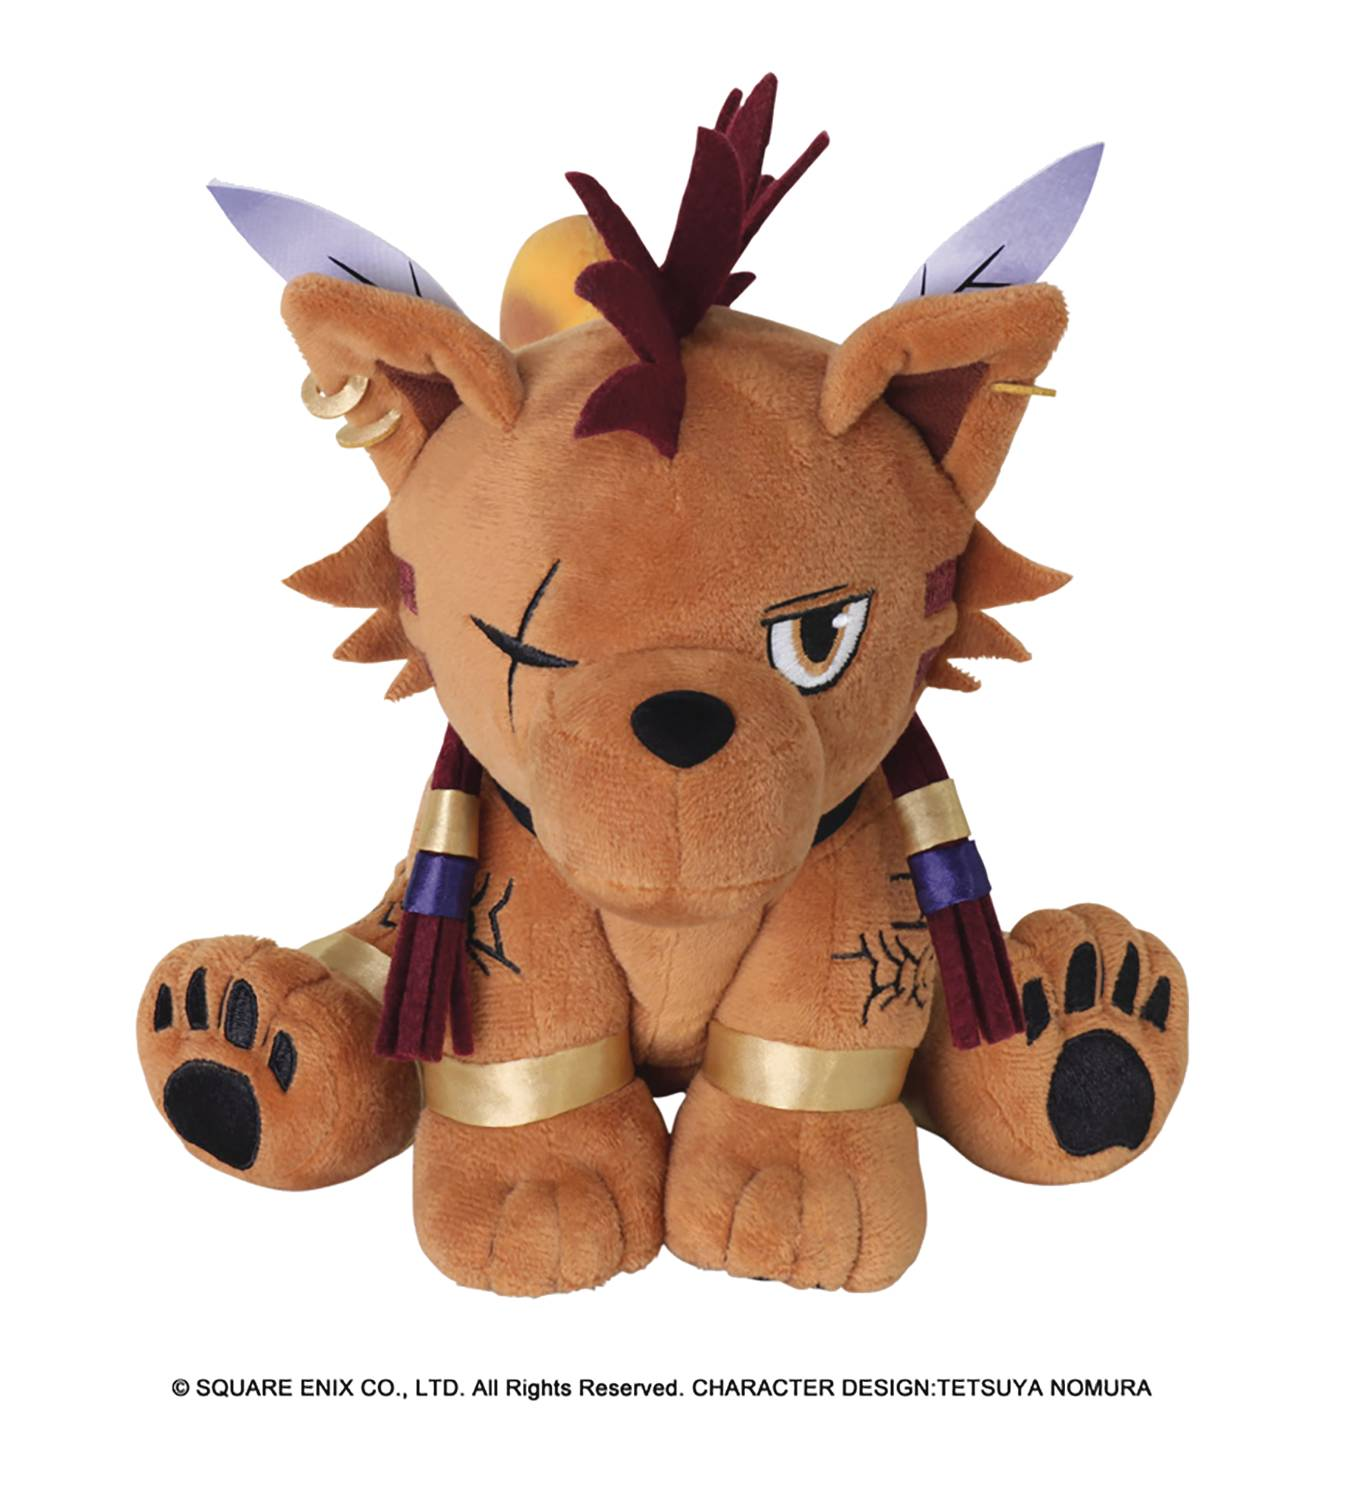 FINAL FANTASY VII RED XIII PLUSH ACTION DOLL